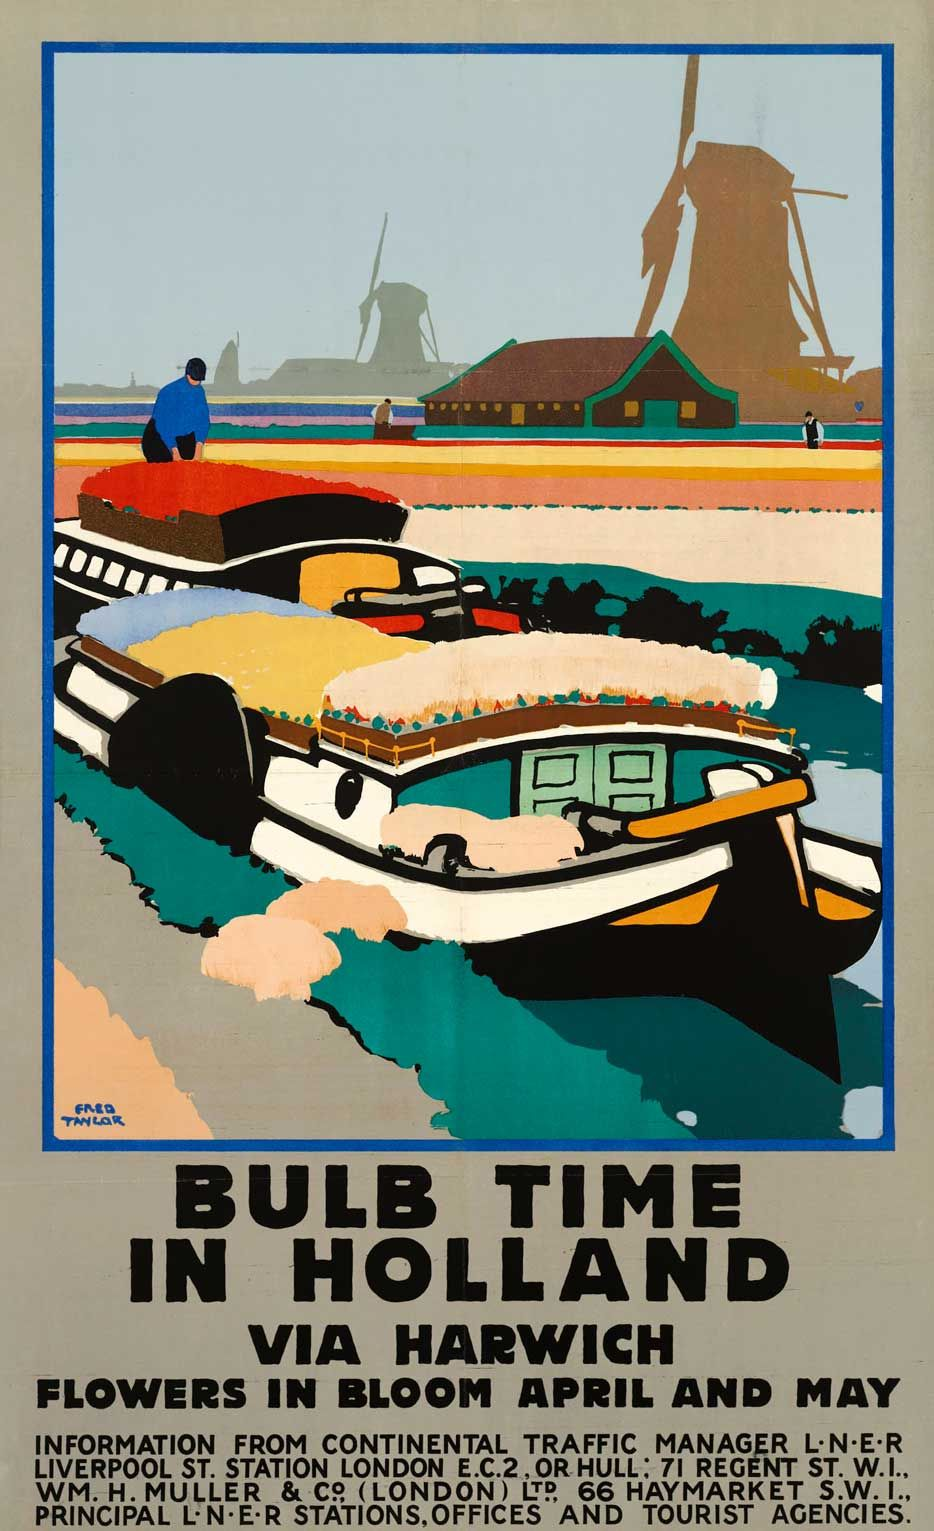 Bulb Time in Holland, LNER, 1929, by Fred Taylor in 2020